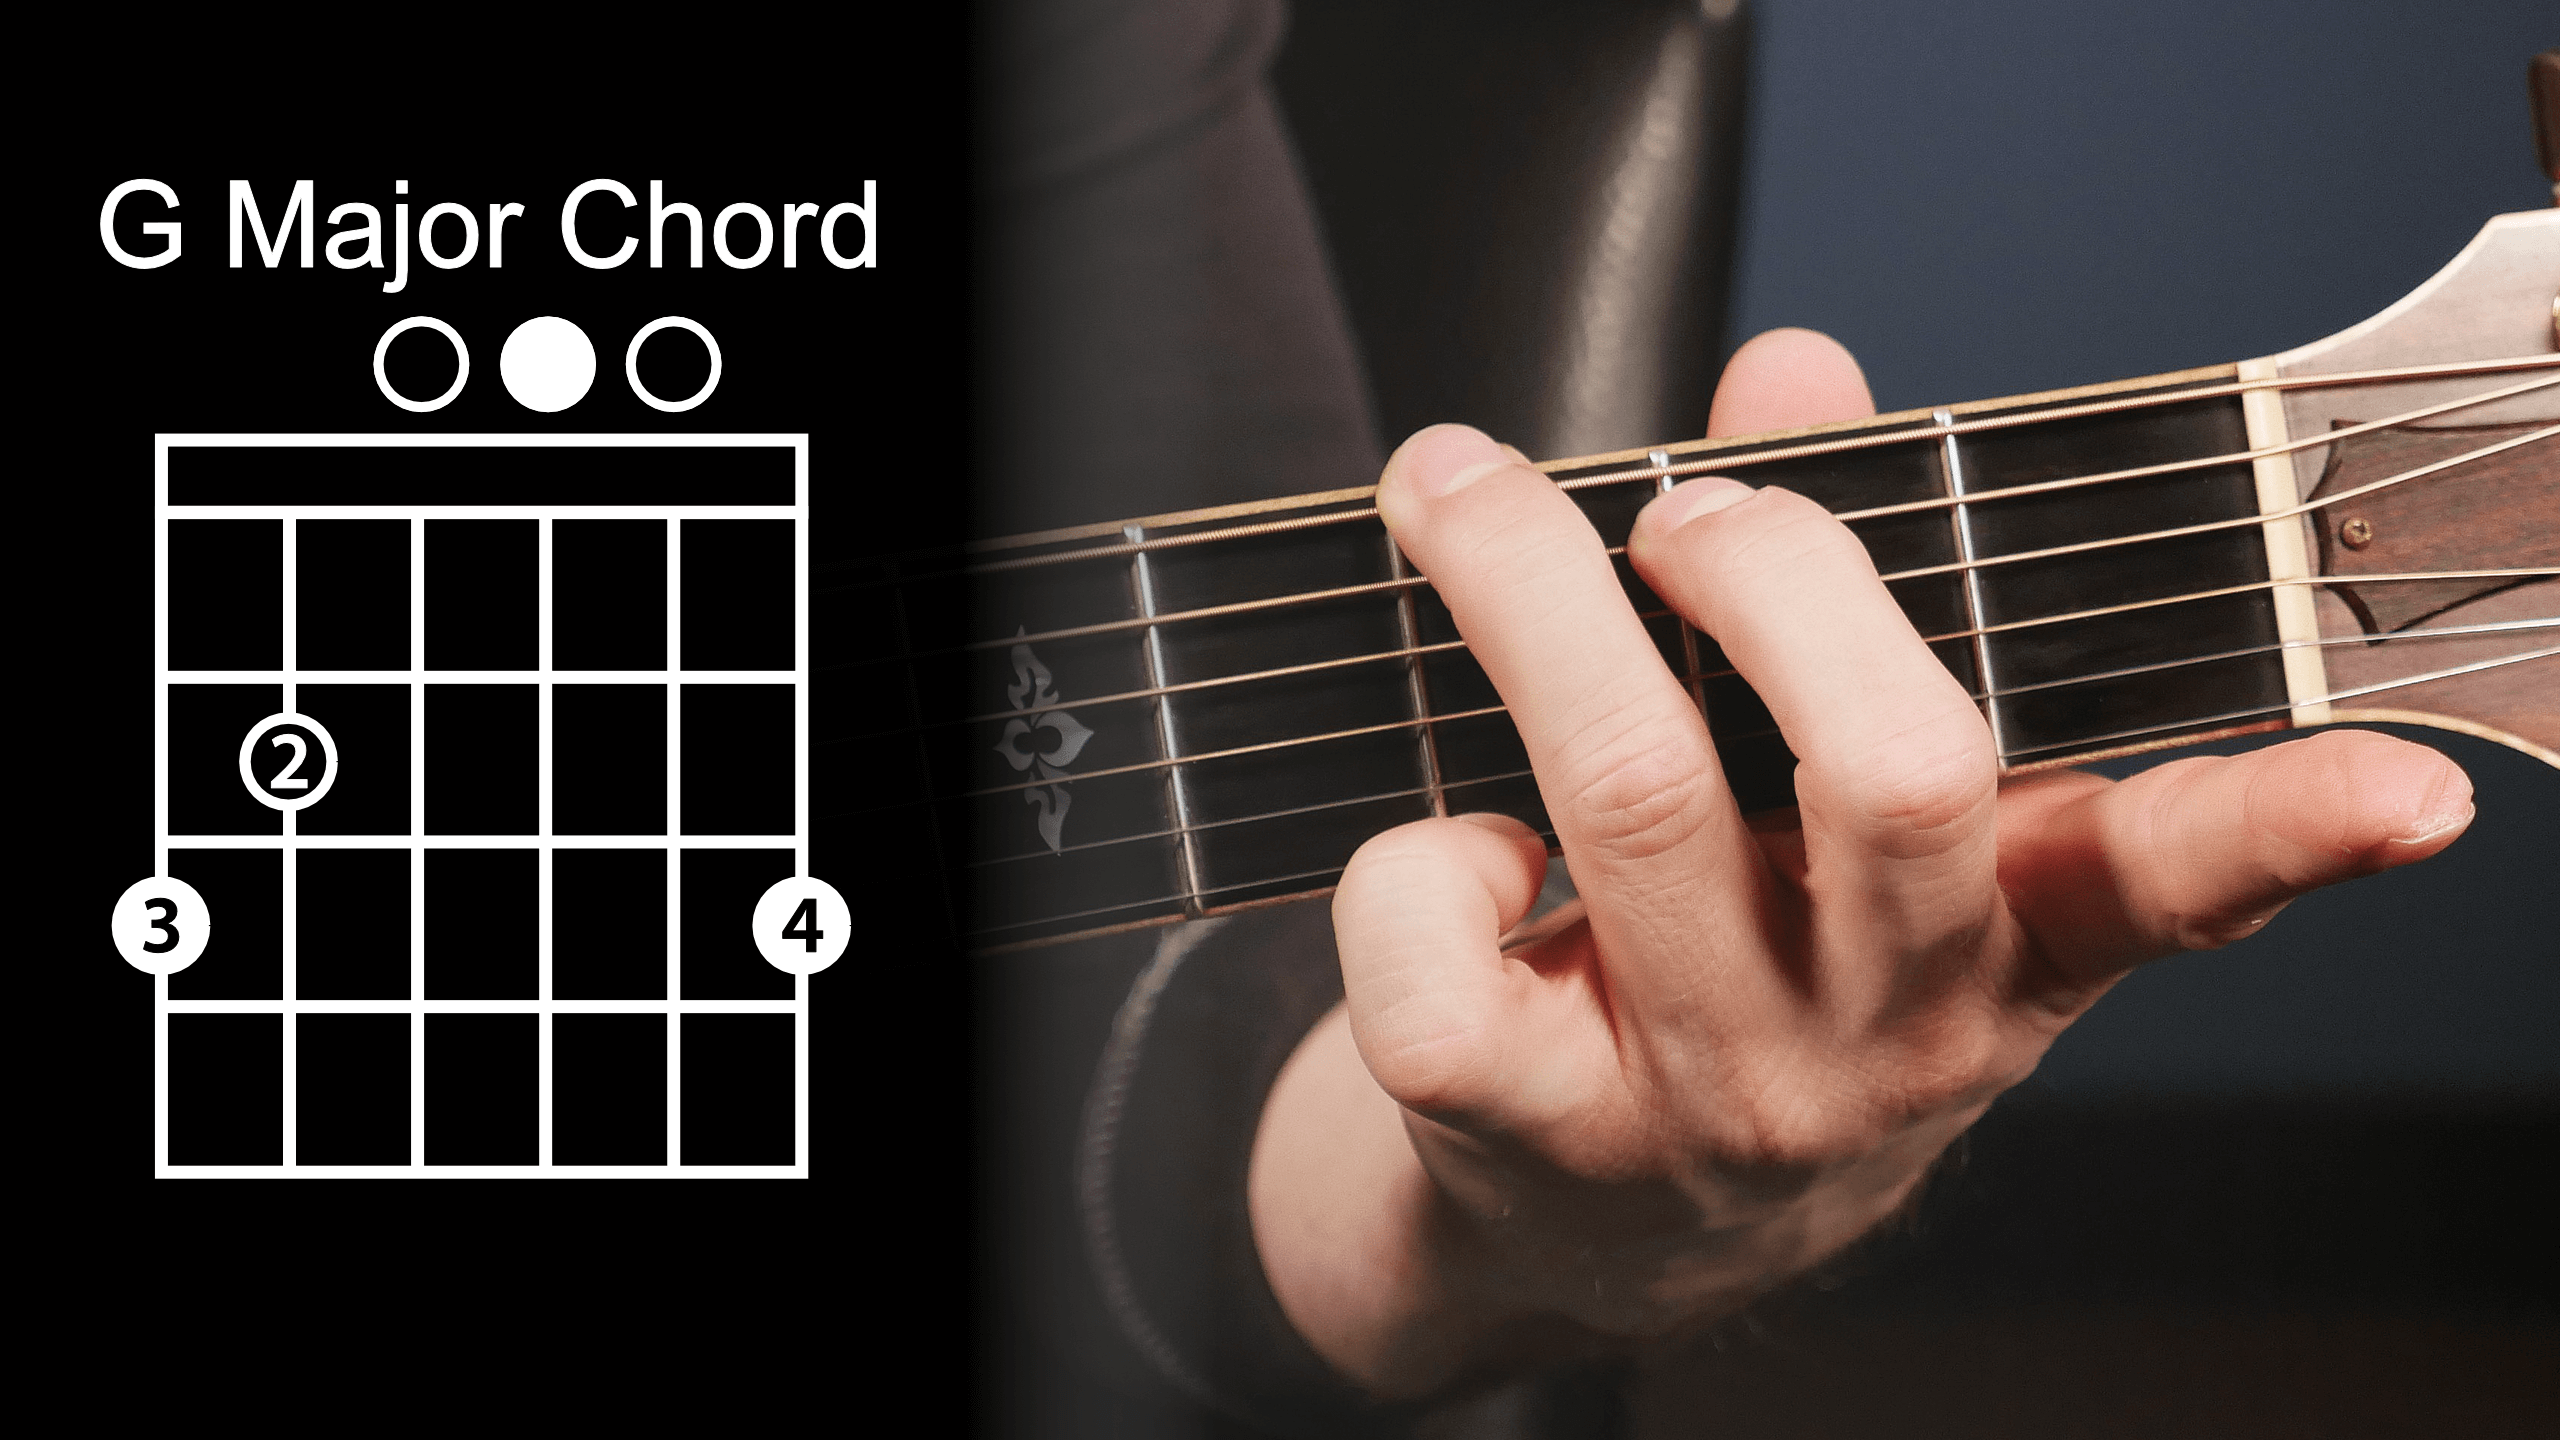 G Chord Guitar Finger Position Play 10 Songs With 4 C...